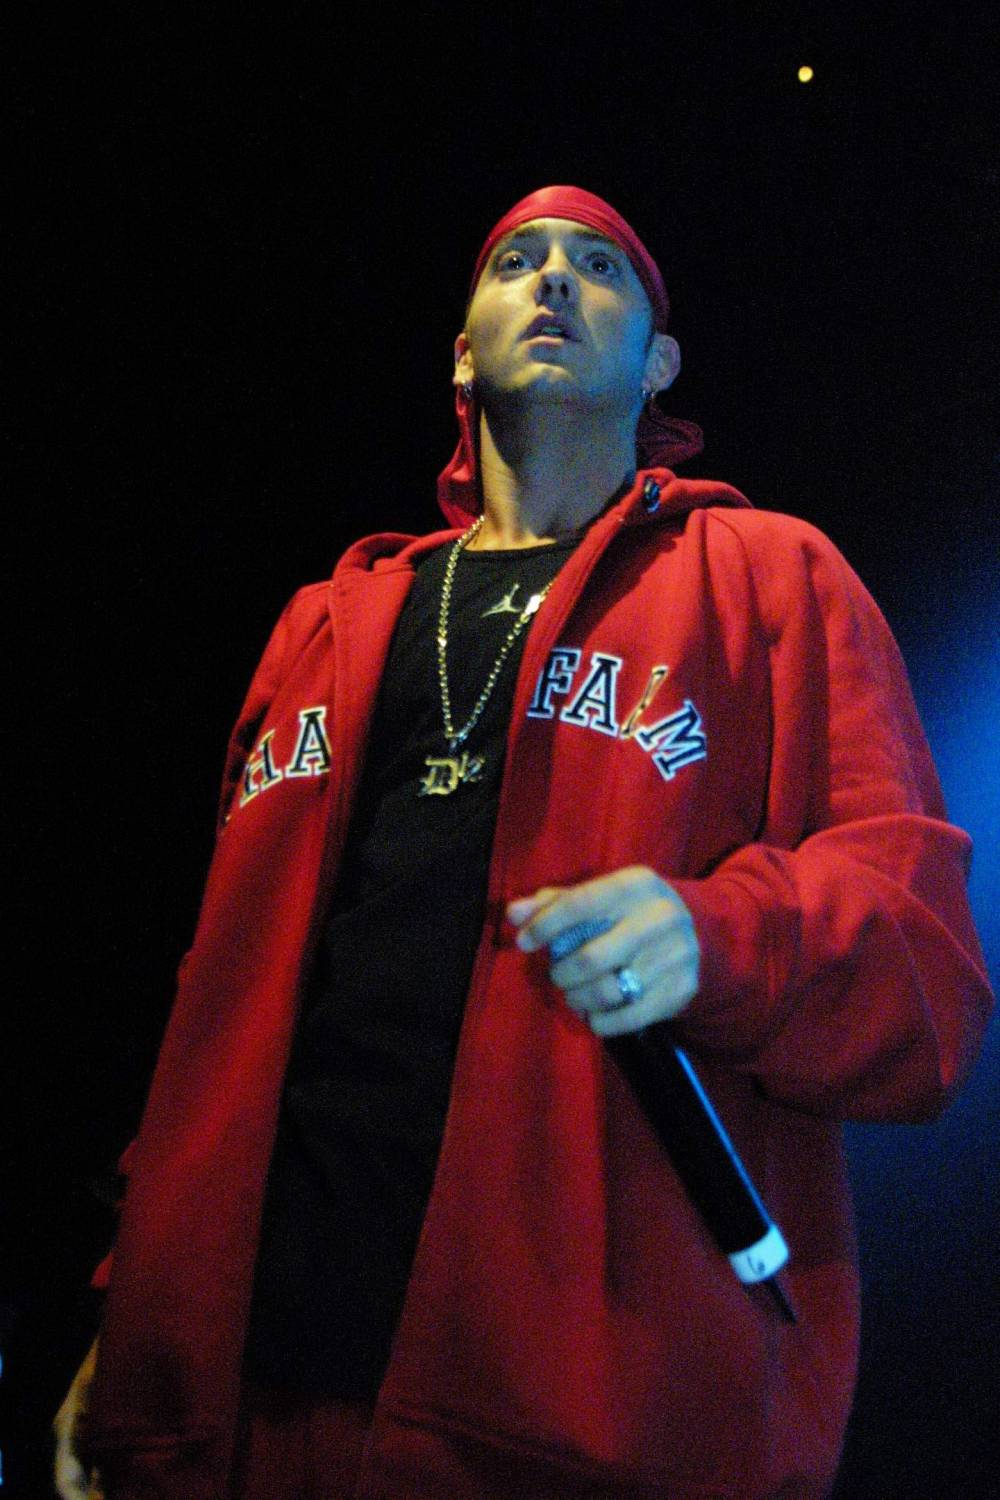 Wallpaper Hd Animals Wallpaper Pack Eminem Wallpapers High Quality Download Free